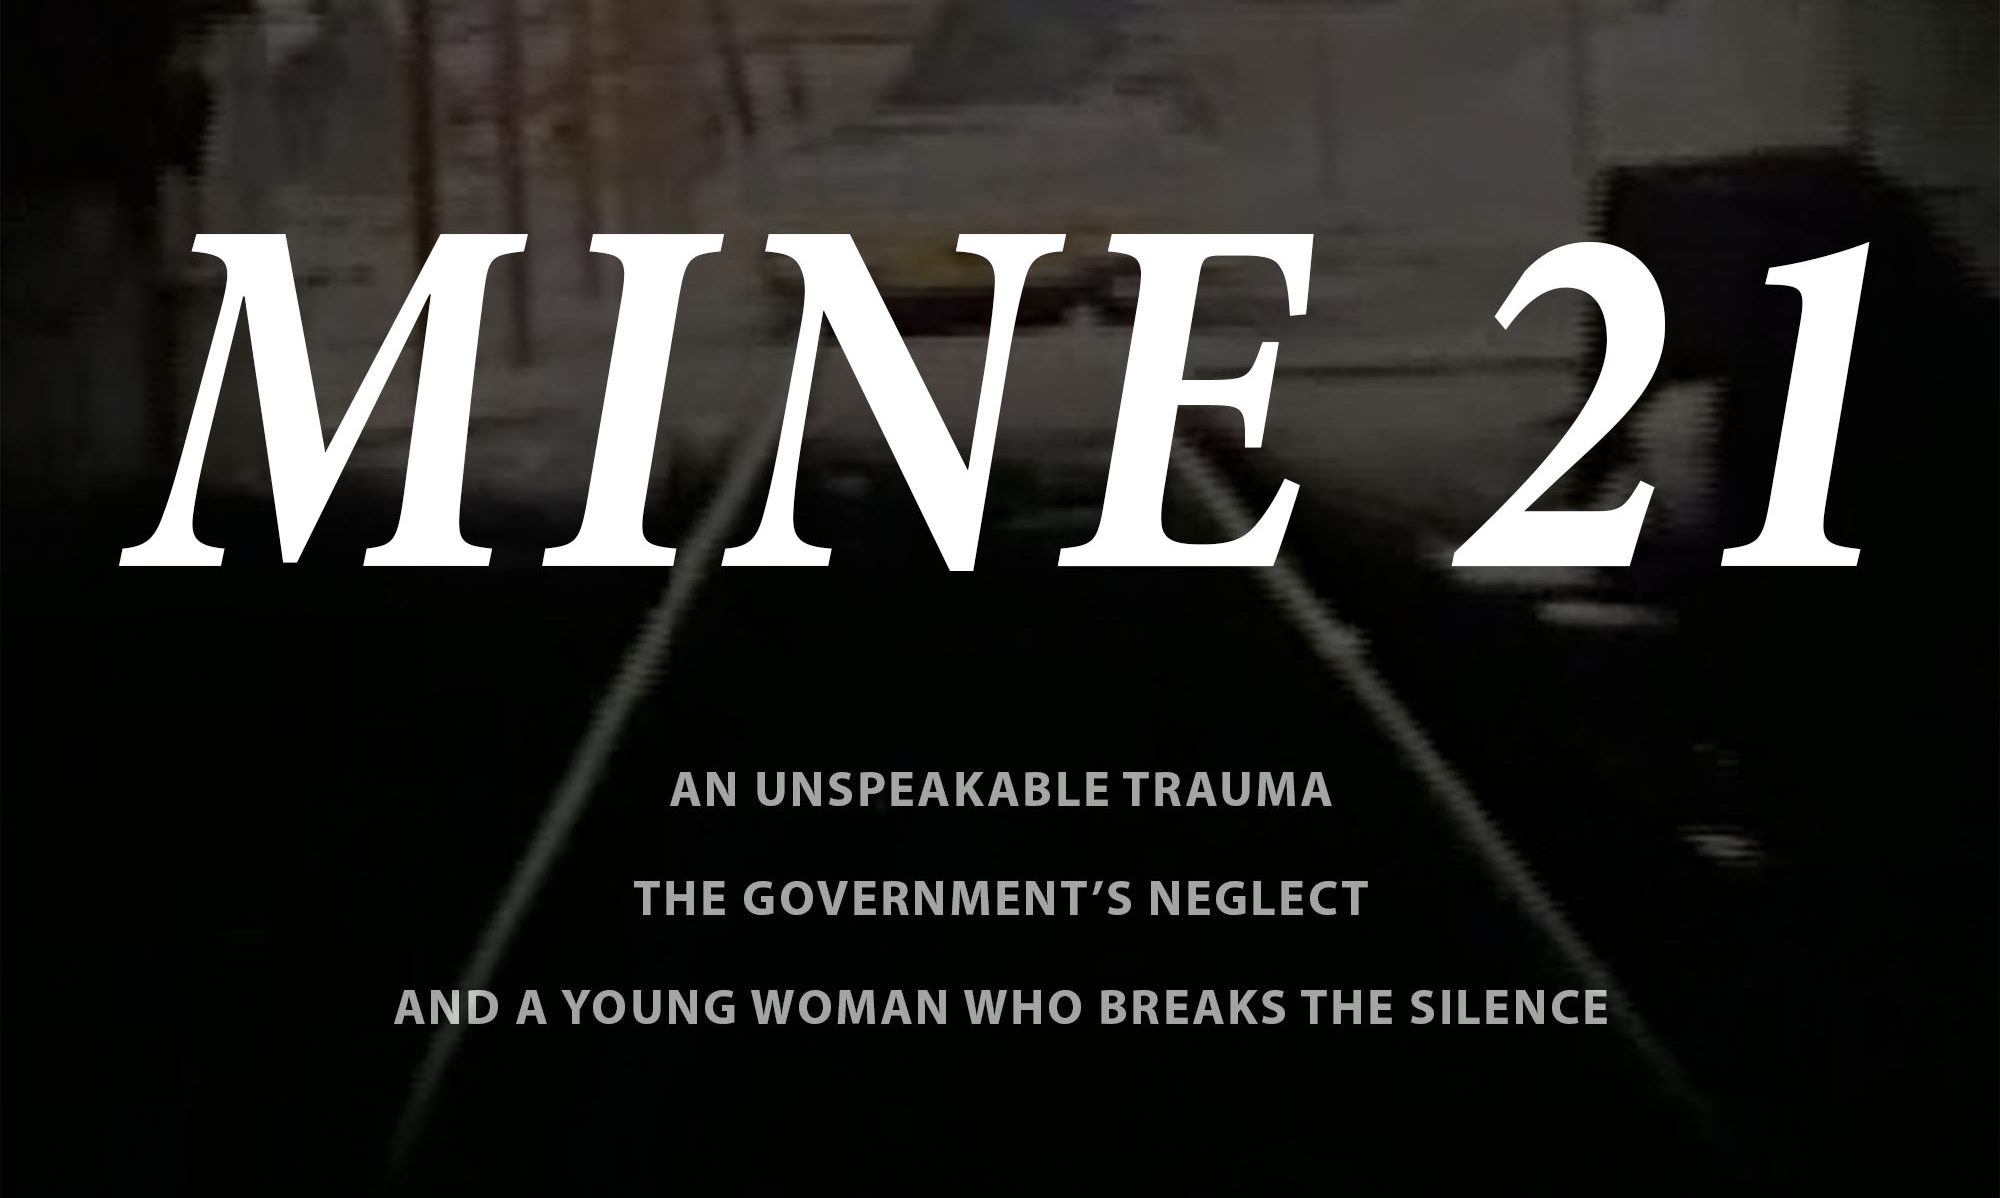 Watch Mine 21: https://video.alexanderstreet.com/watch/mine-21.